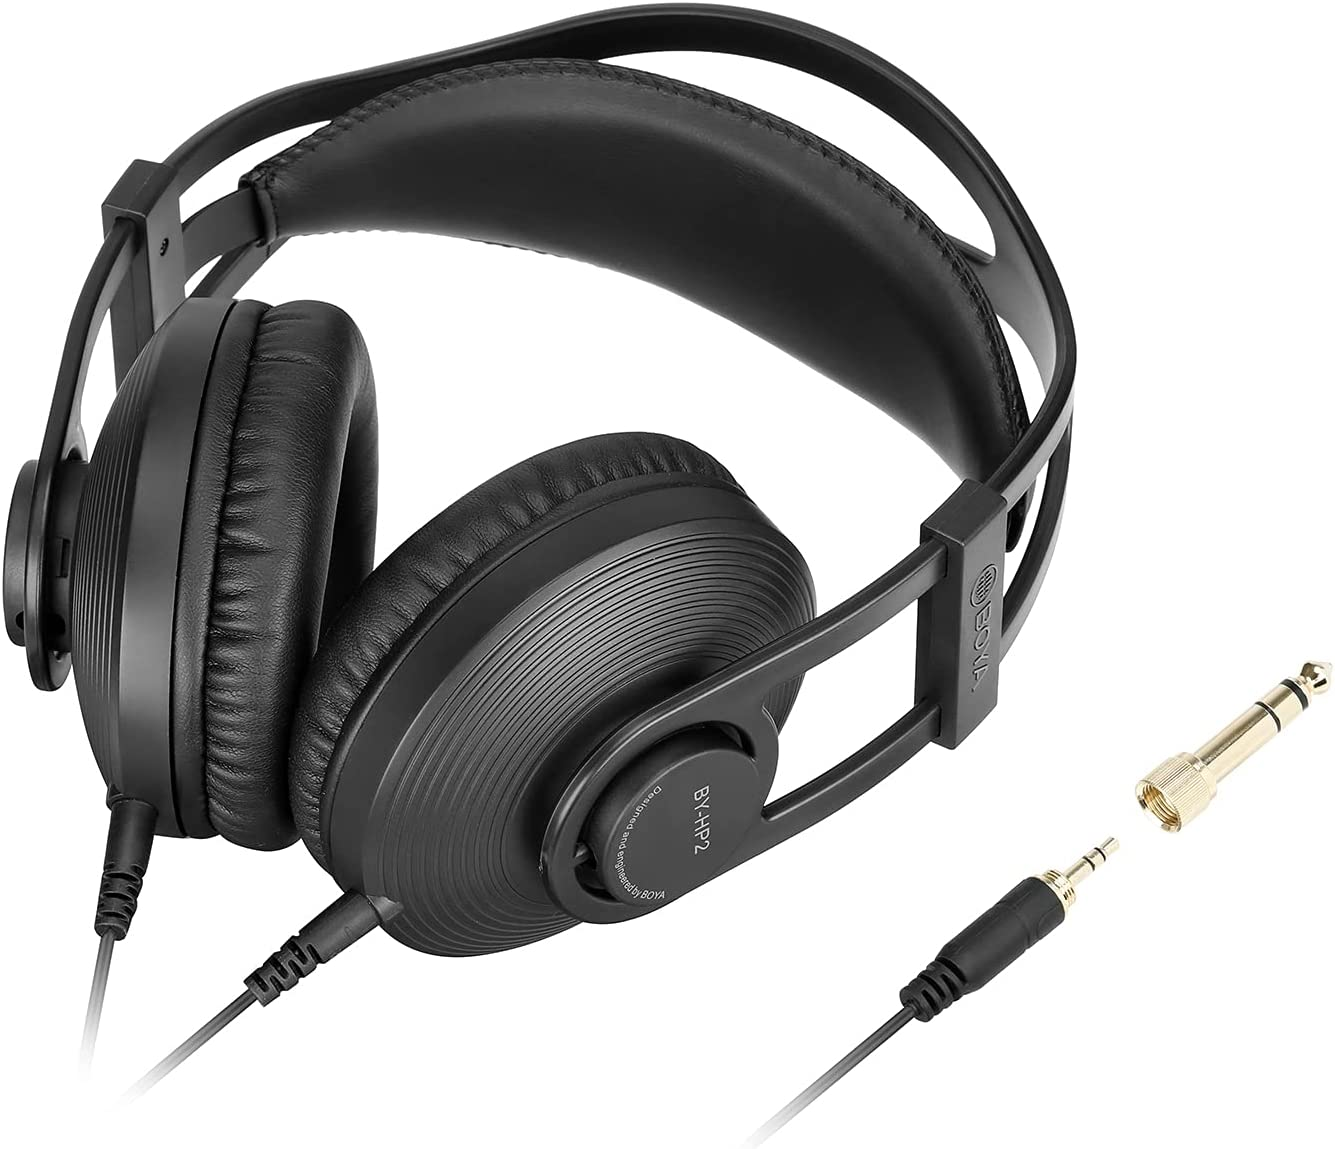 BOYA Monitor Over Ear Headphones Hybrid Active by-HP2 Noise Max 66% OFF Can Special sale item